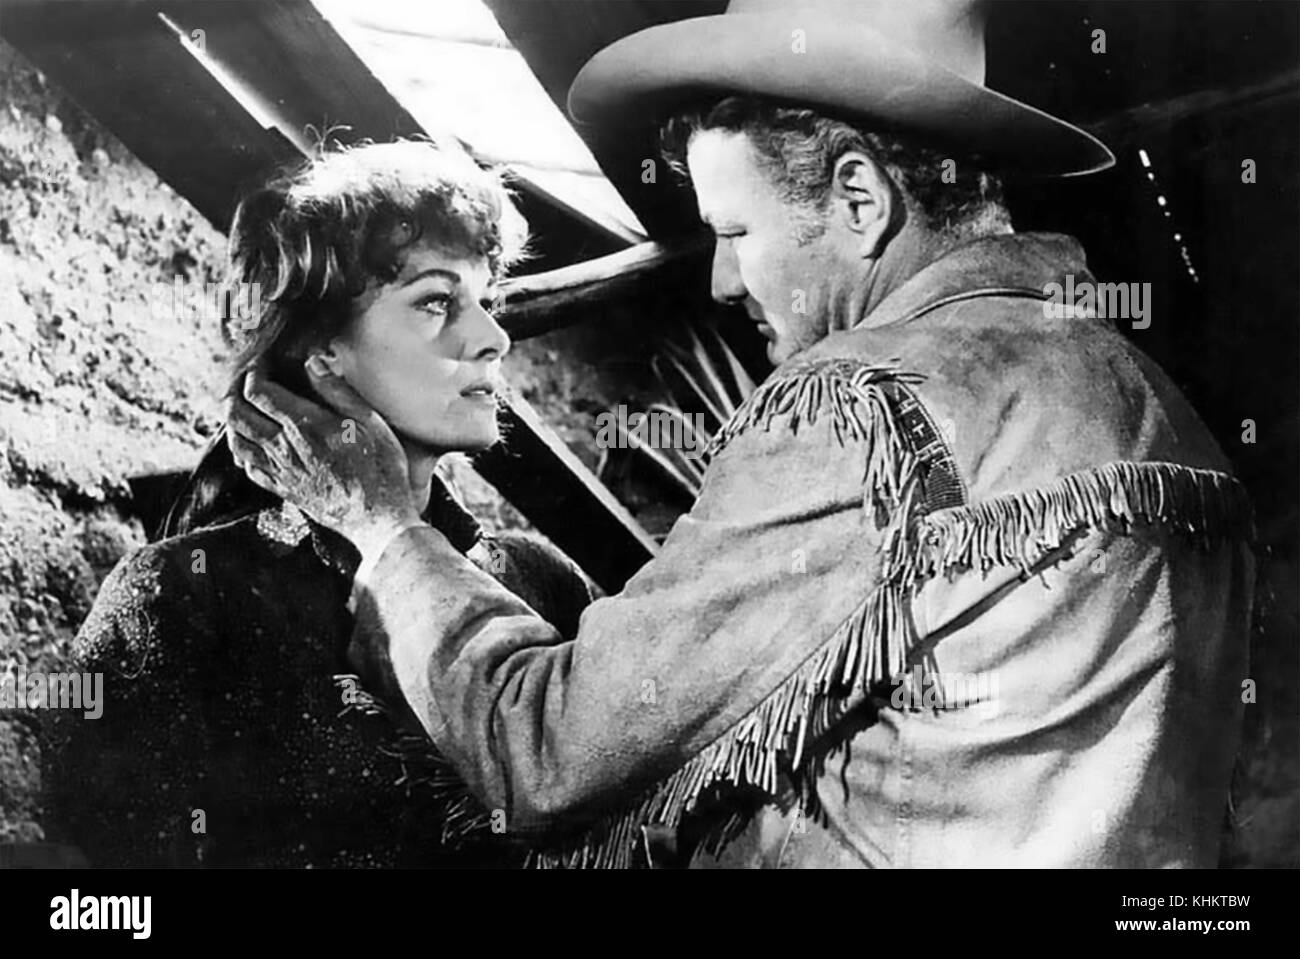 THE DEADLY COMPANIONS 1961 Pathe America film with Maureen O'Hara and Brian Keith - Stock Image